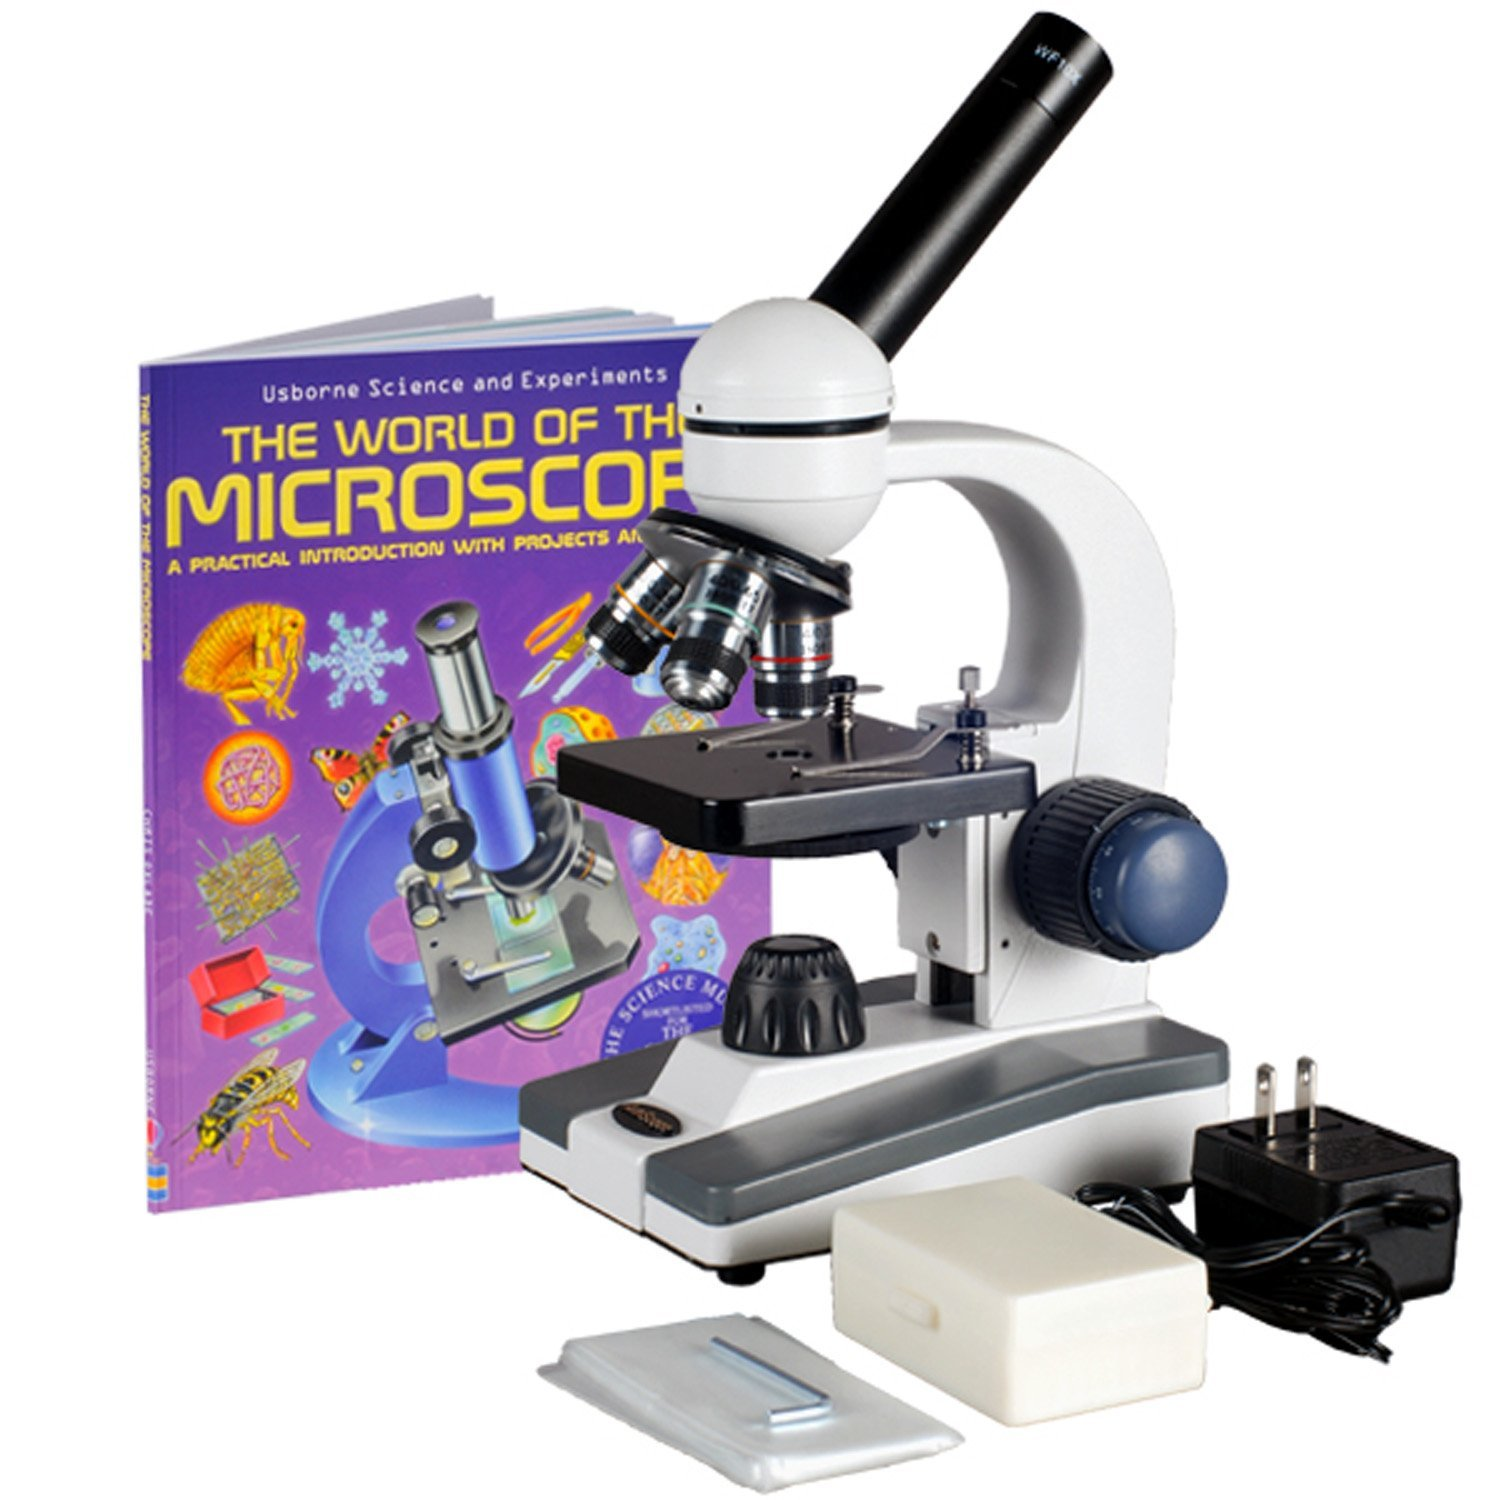 LED Illumination Plain Stage AmScope M200B-LED Cordless Monocular Compound Microscope Coarse and Fine Focus 110V or Cordless Operation 40x-800x Magnification WF10x and WF20x Eyepieces Single-Lens Condenser Brightfield